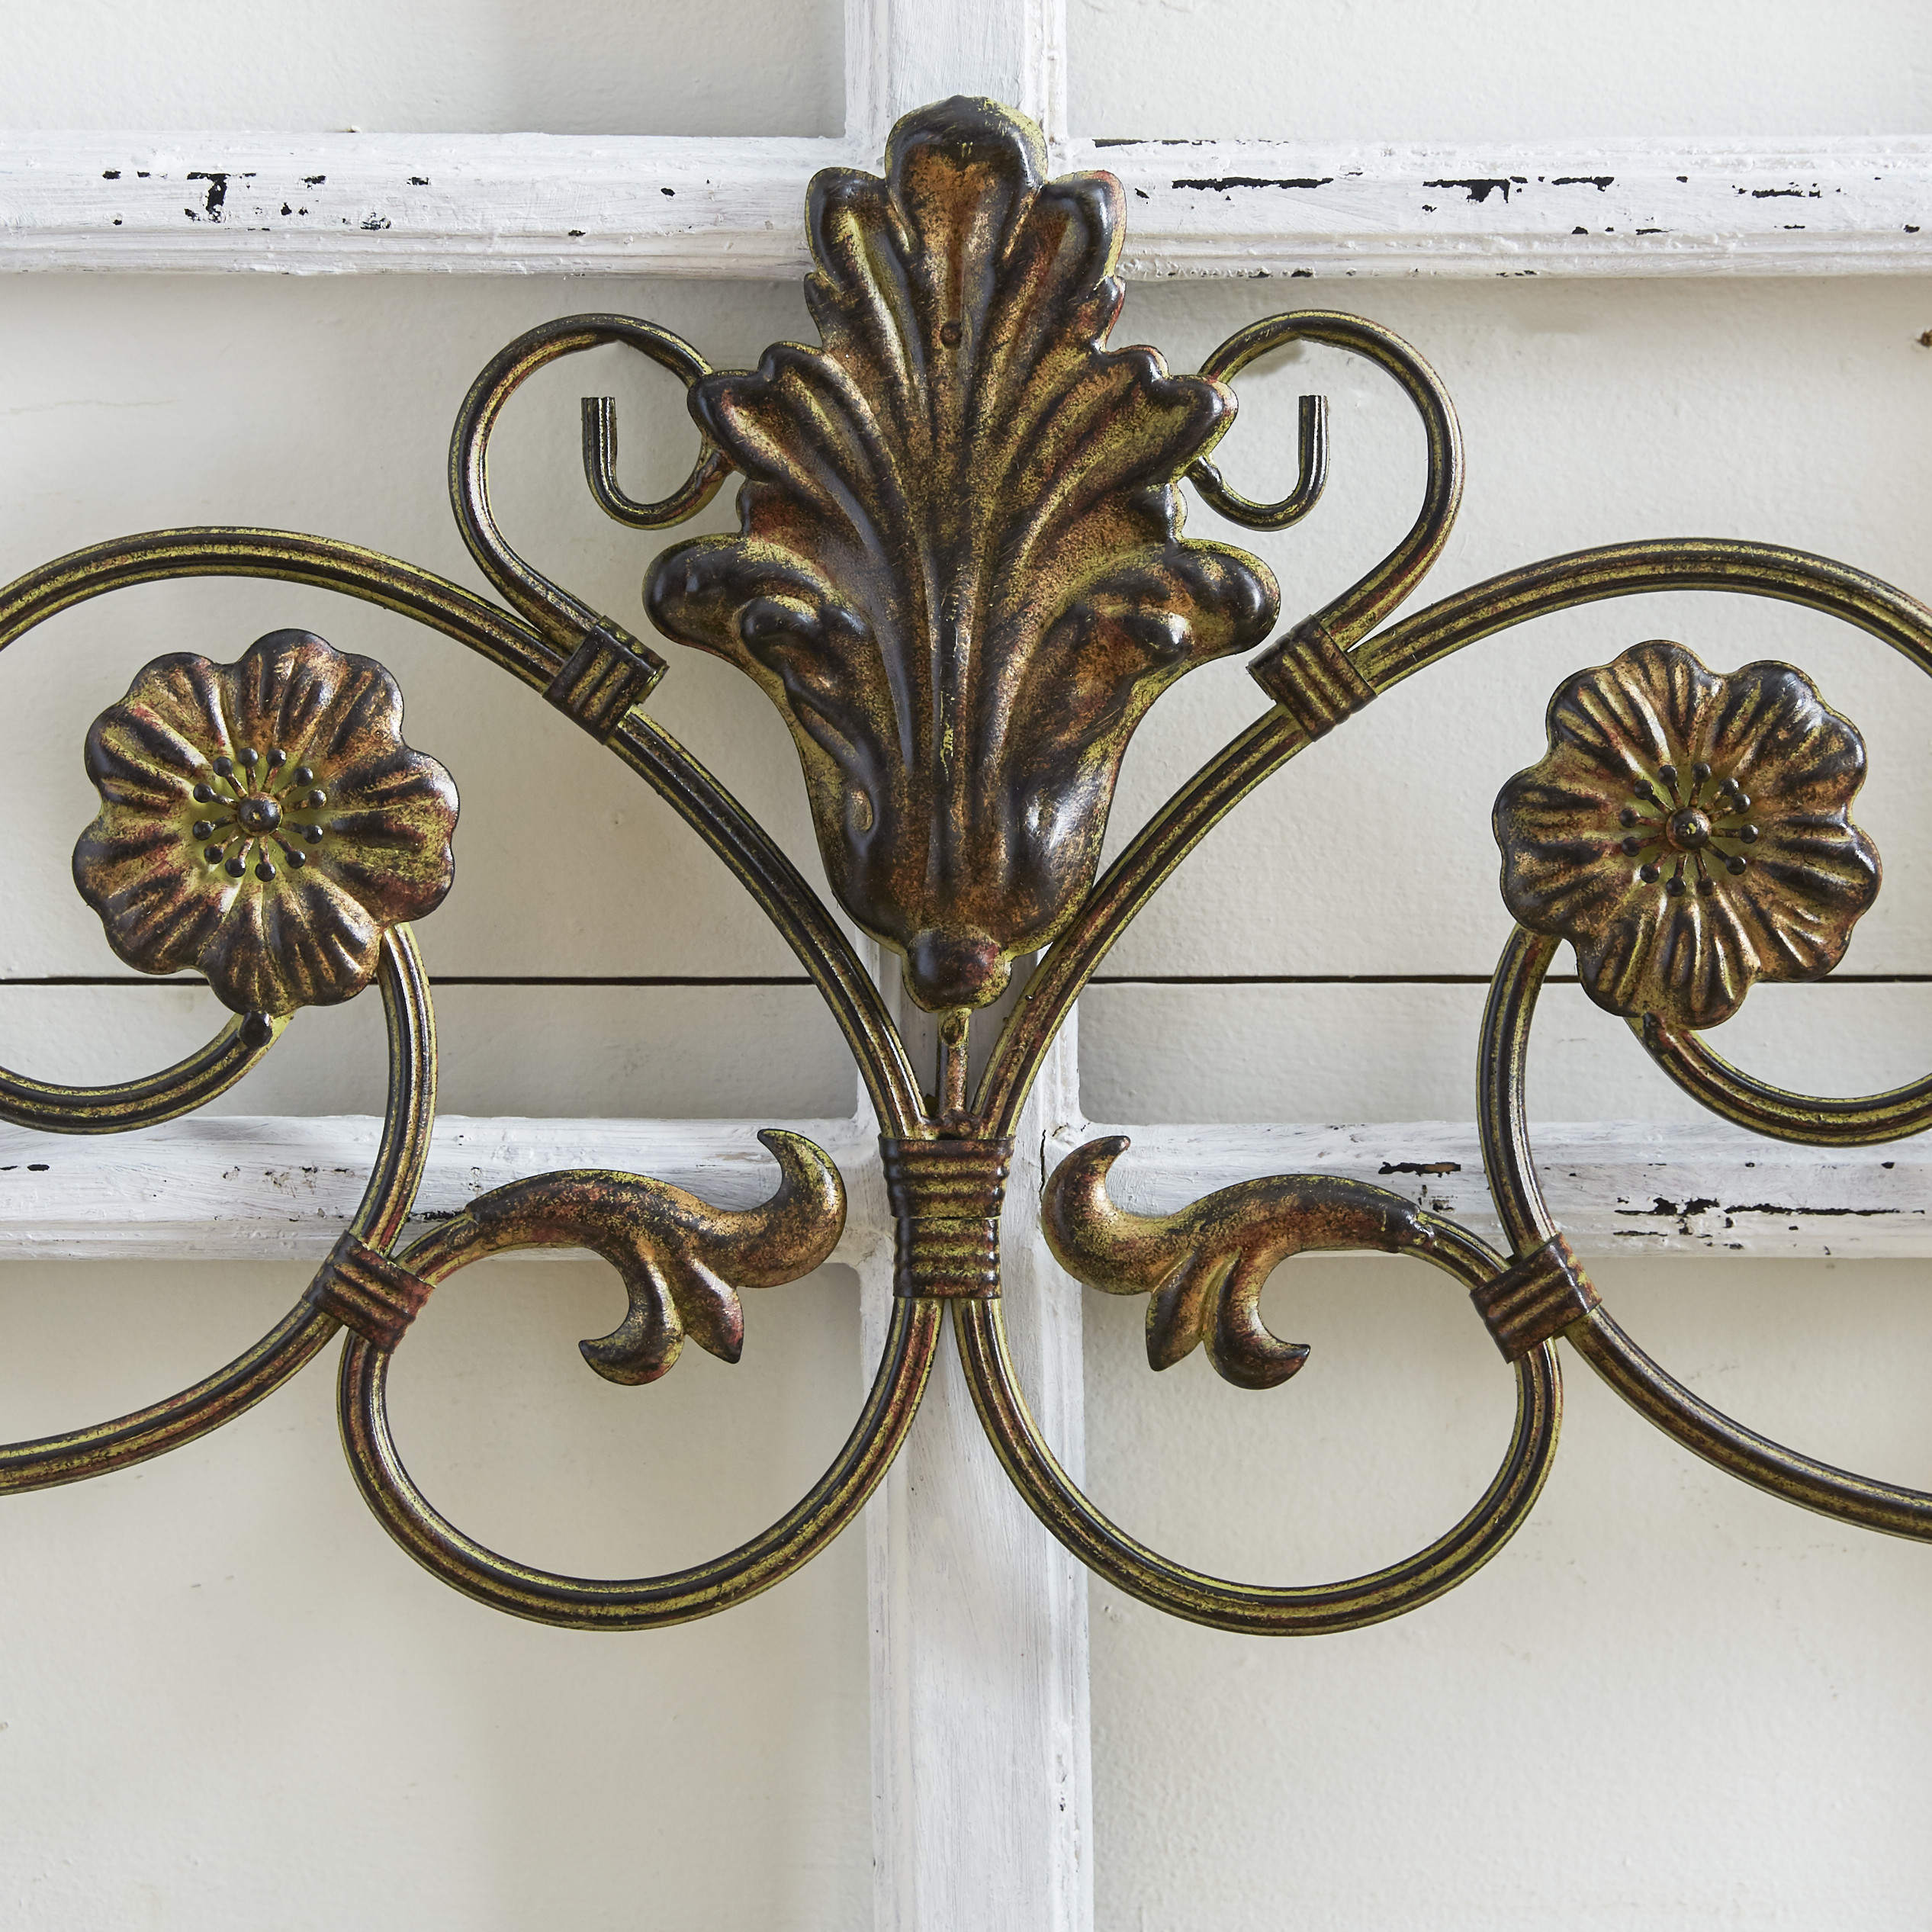 Best ideas about Wrought Iron Wall Art . Save or Pin Charlton Home Wrought Iron Wall Décor & Reviews Now.